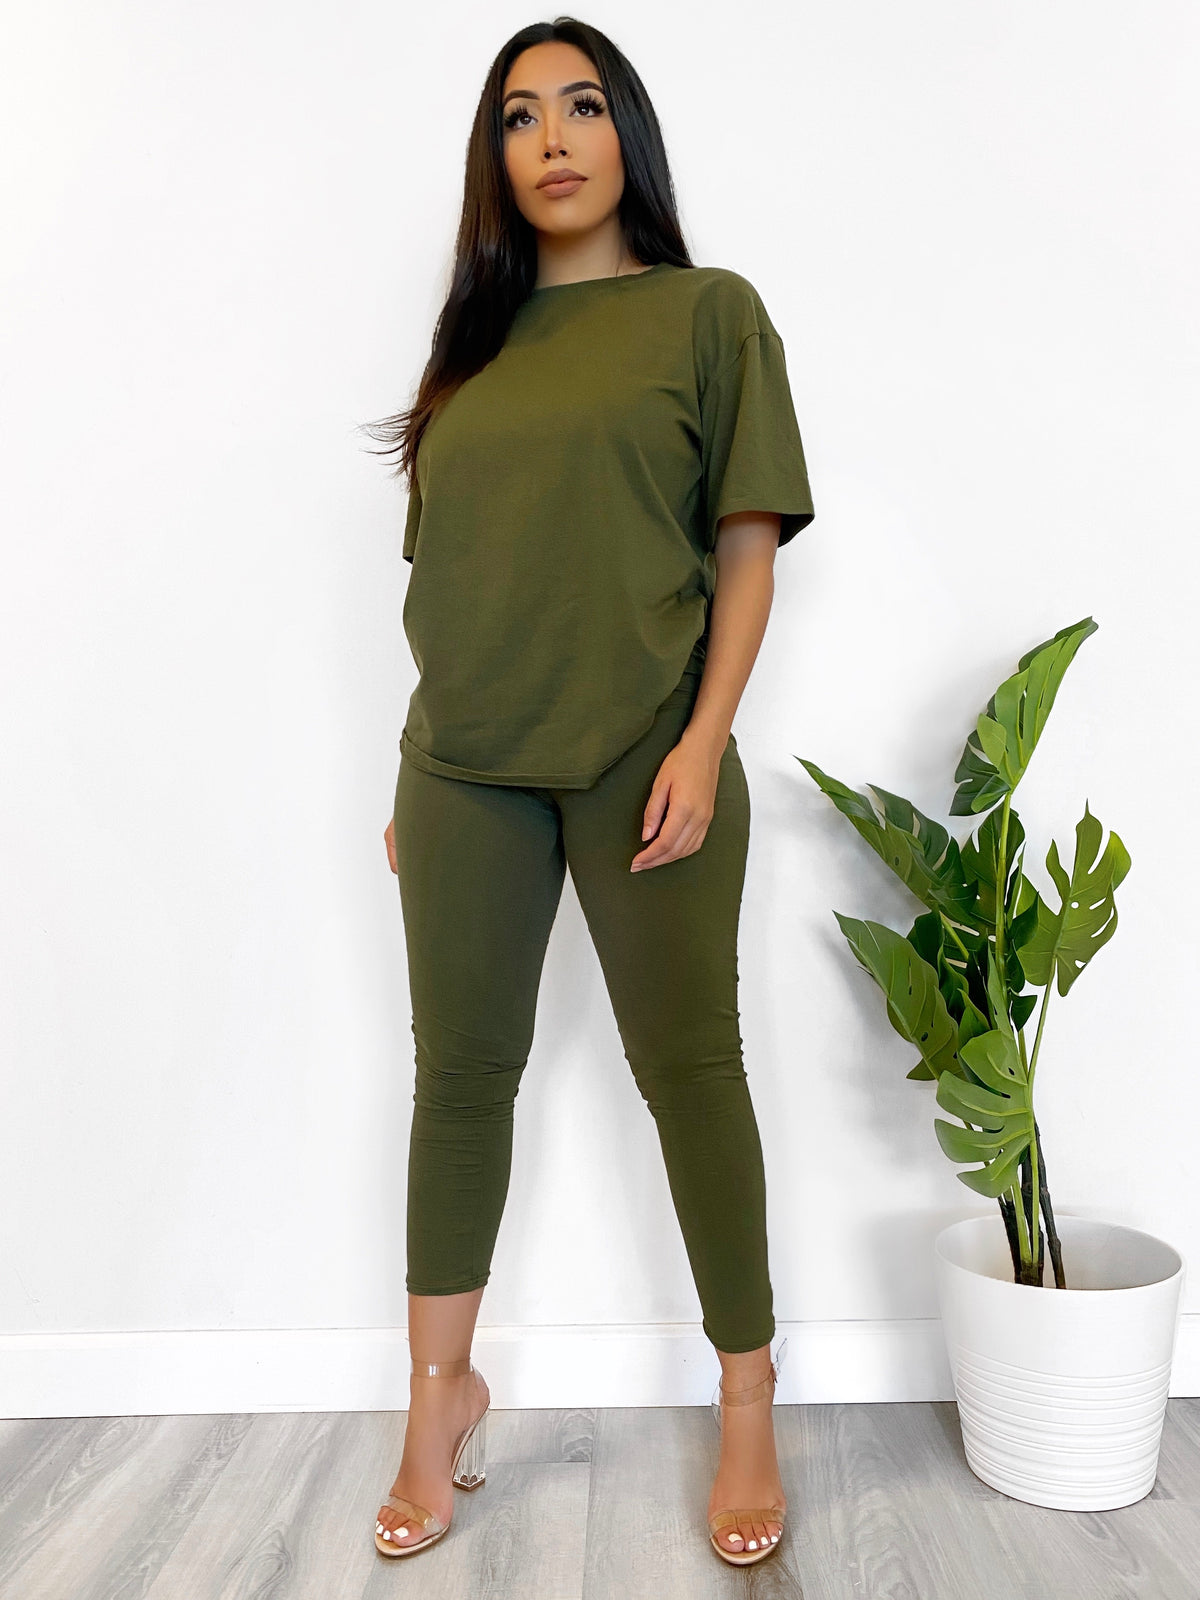 olive2 piece, high waist leggings, oversize tee, short sleeve